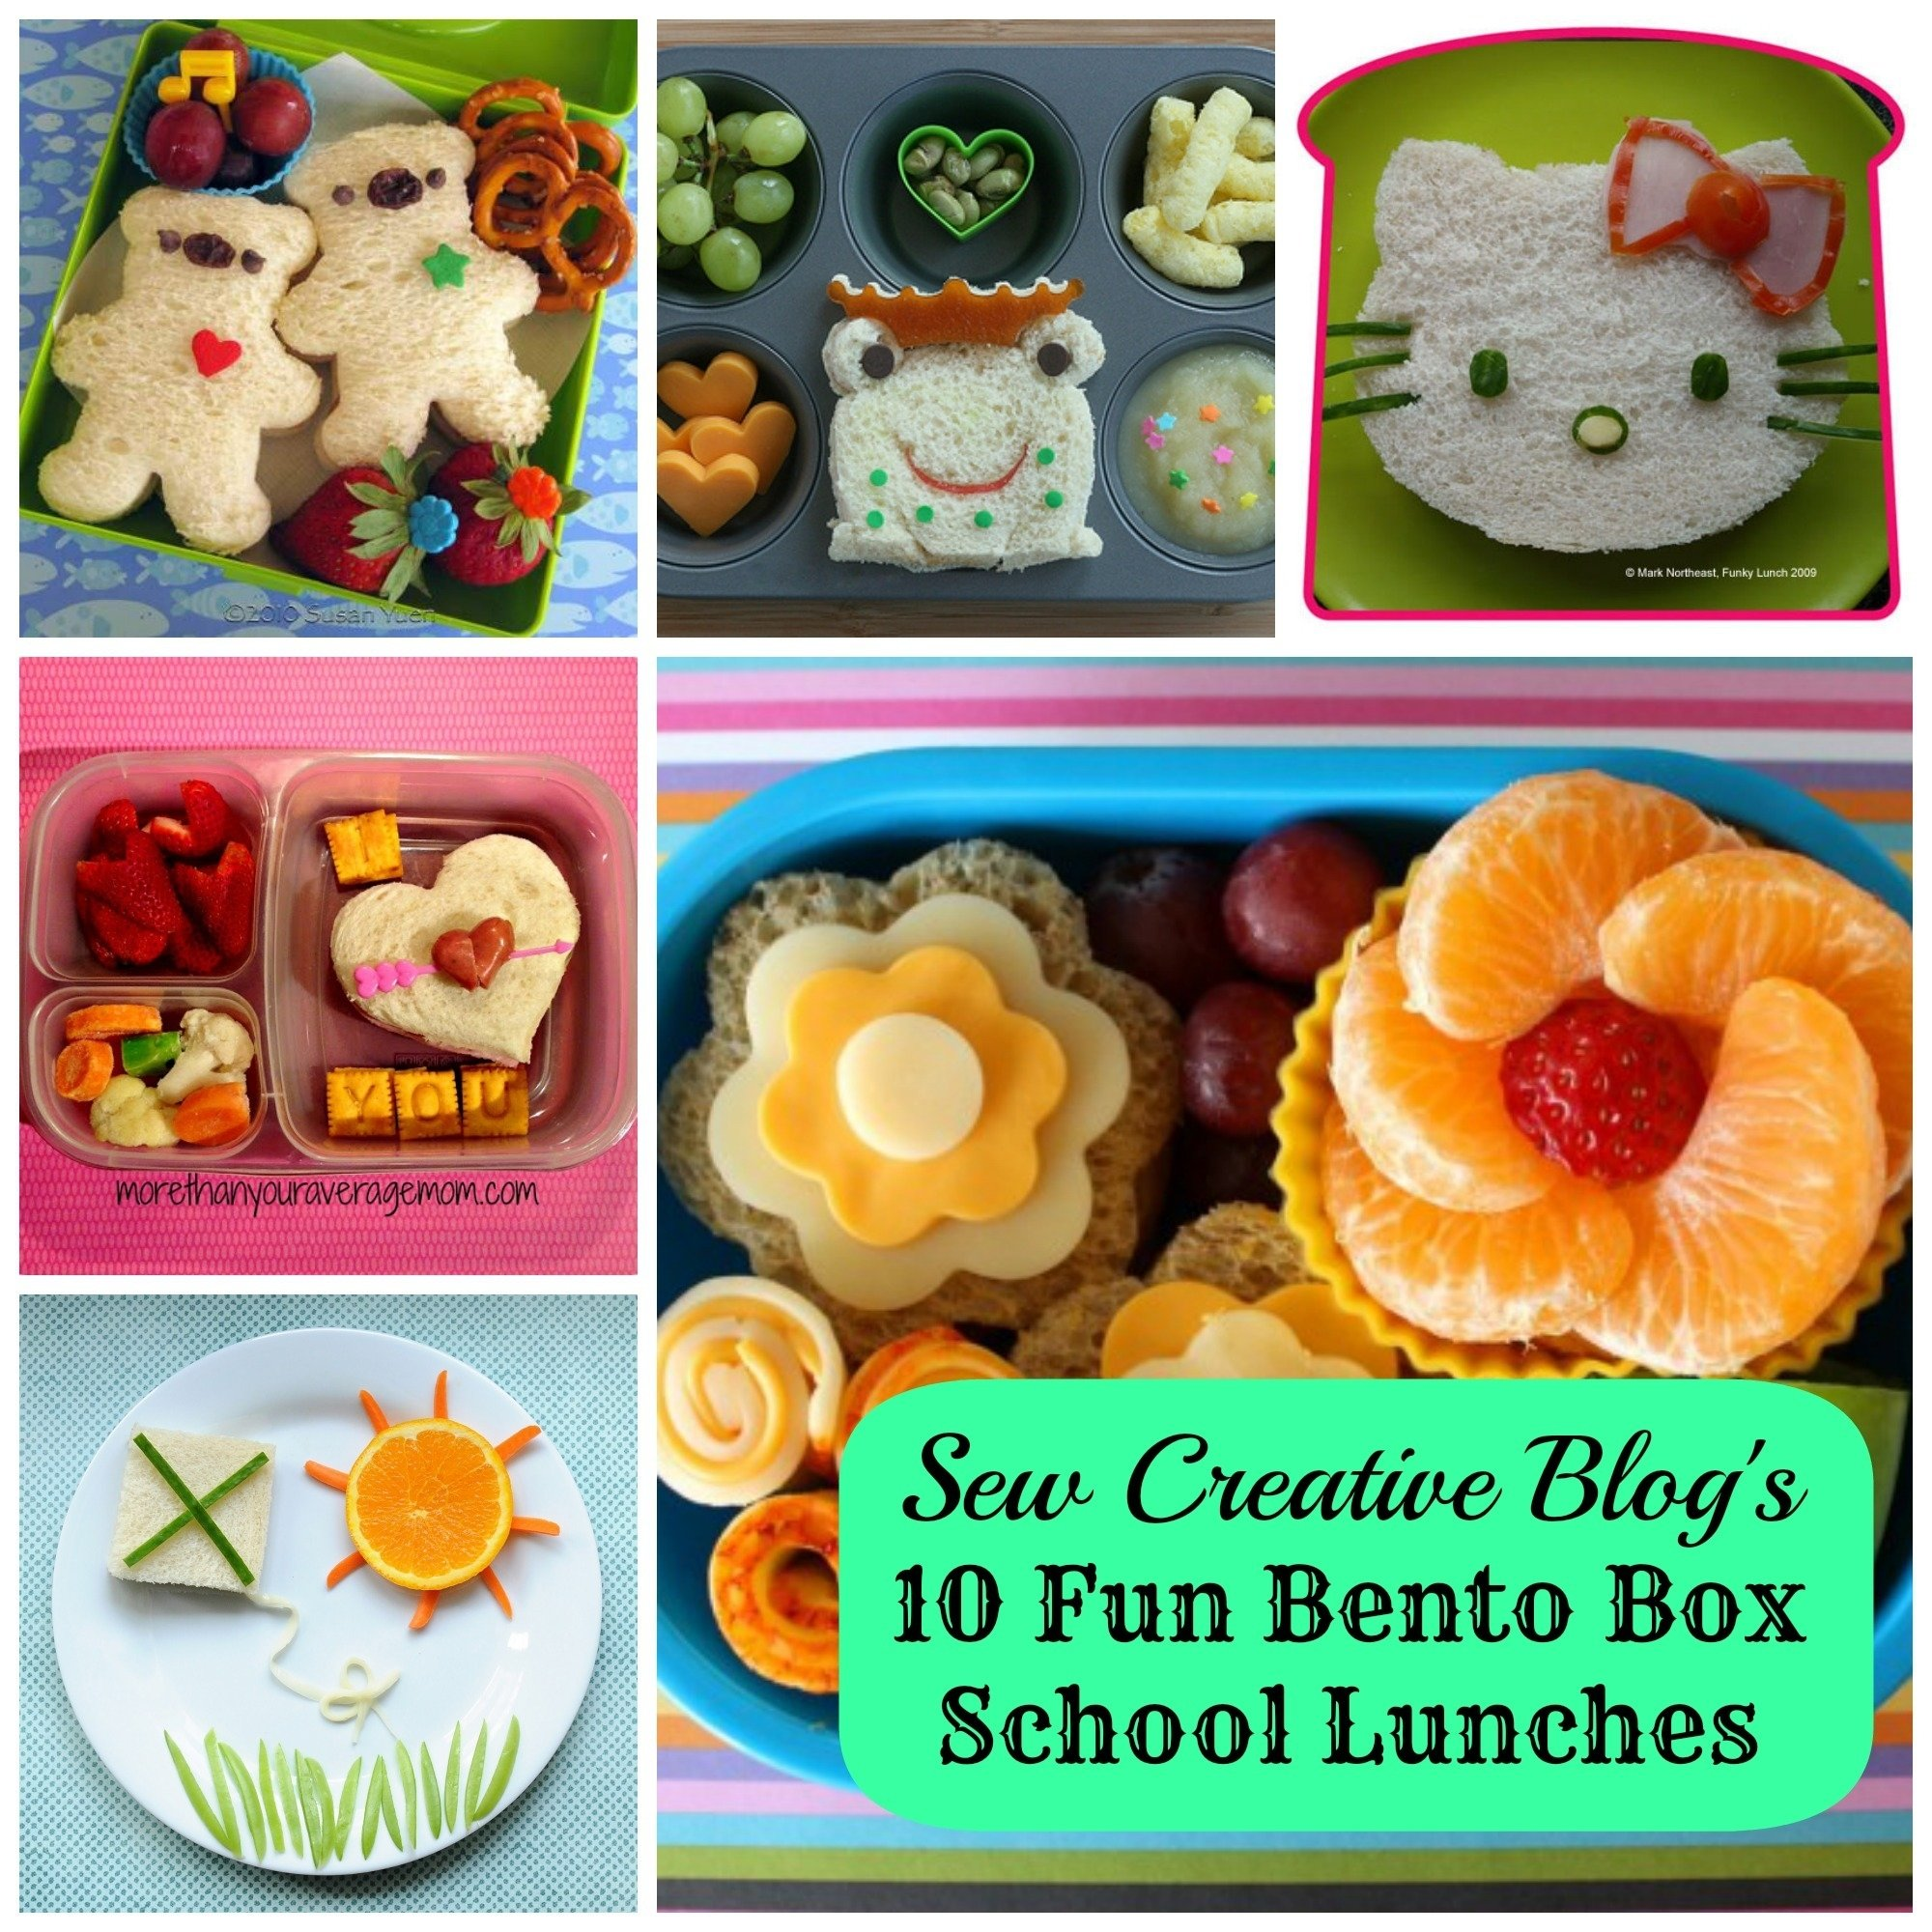 10 Ideal School Lunch Ideas For Picky Kids weekly inspiration 10 fun bento box school lunches sew creative 4 2020